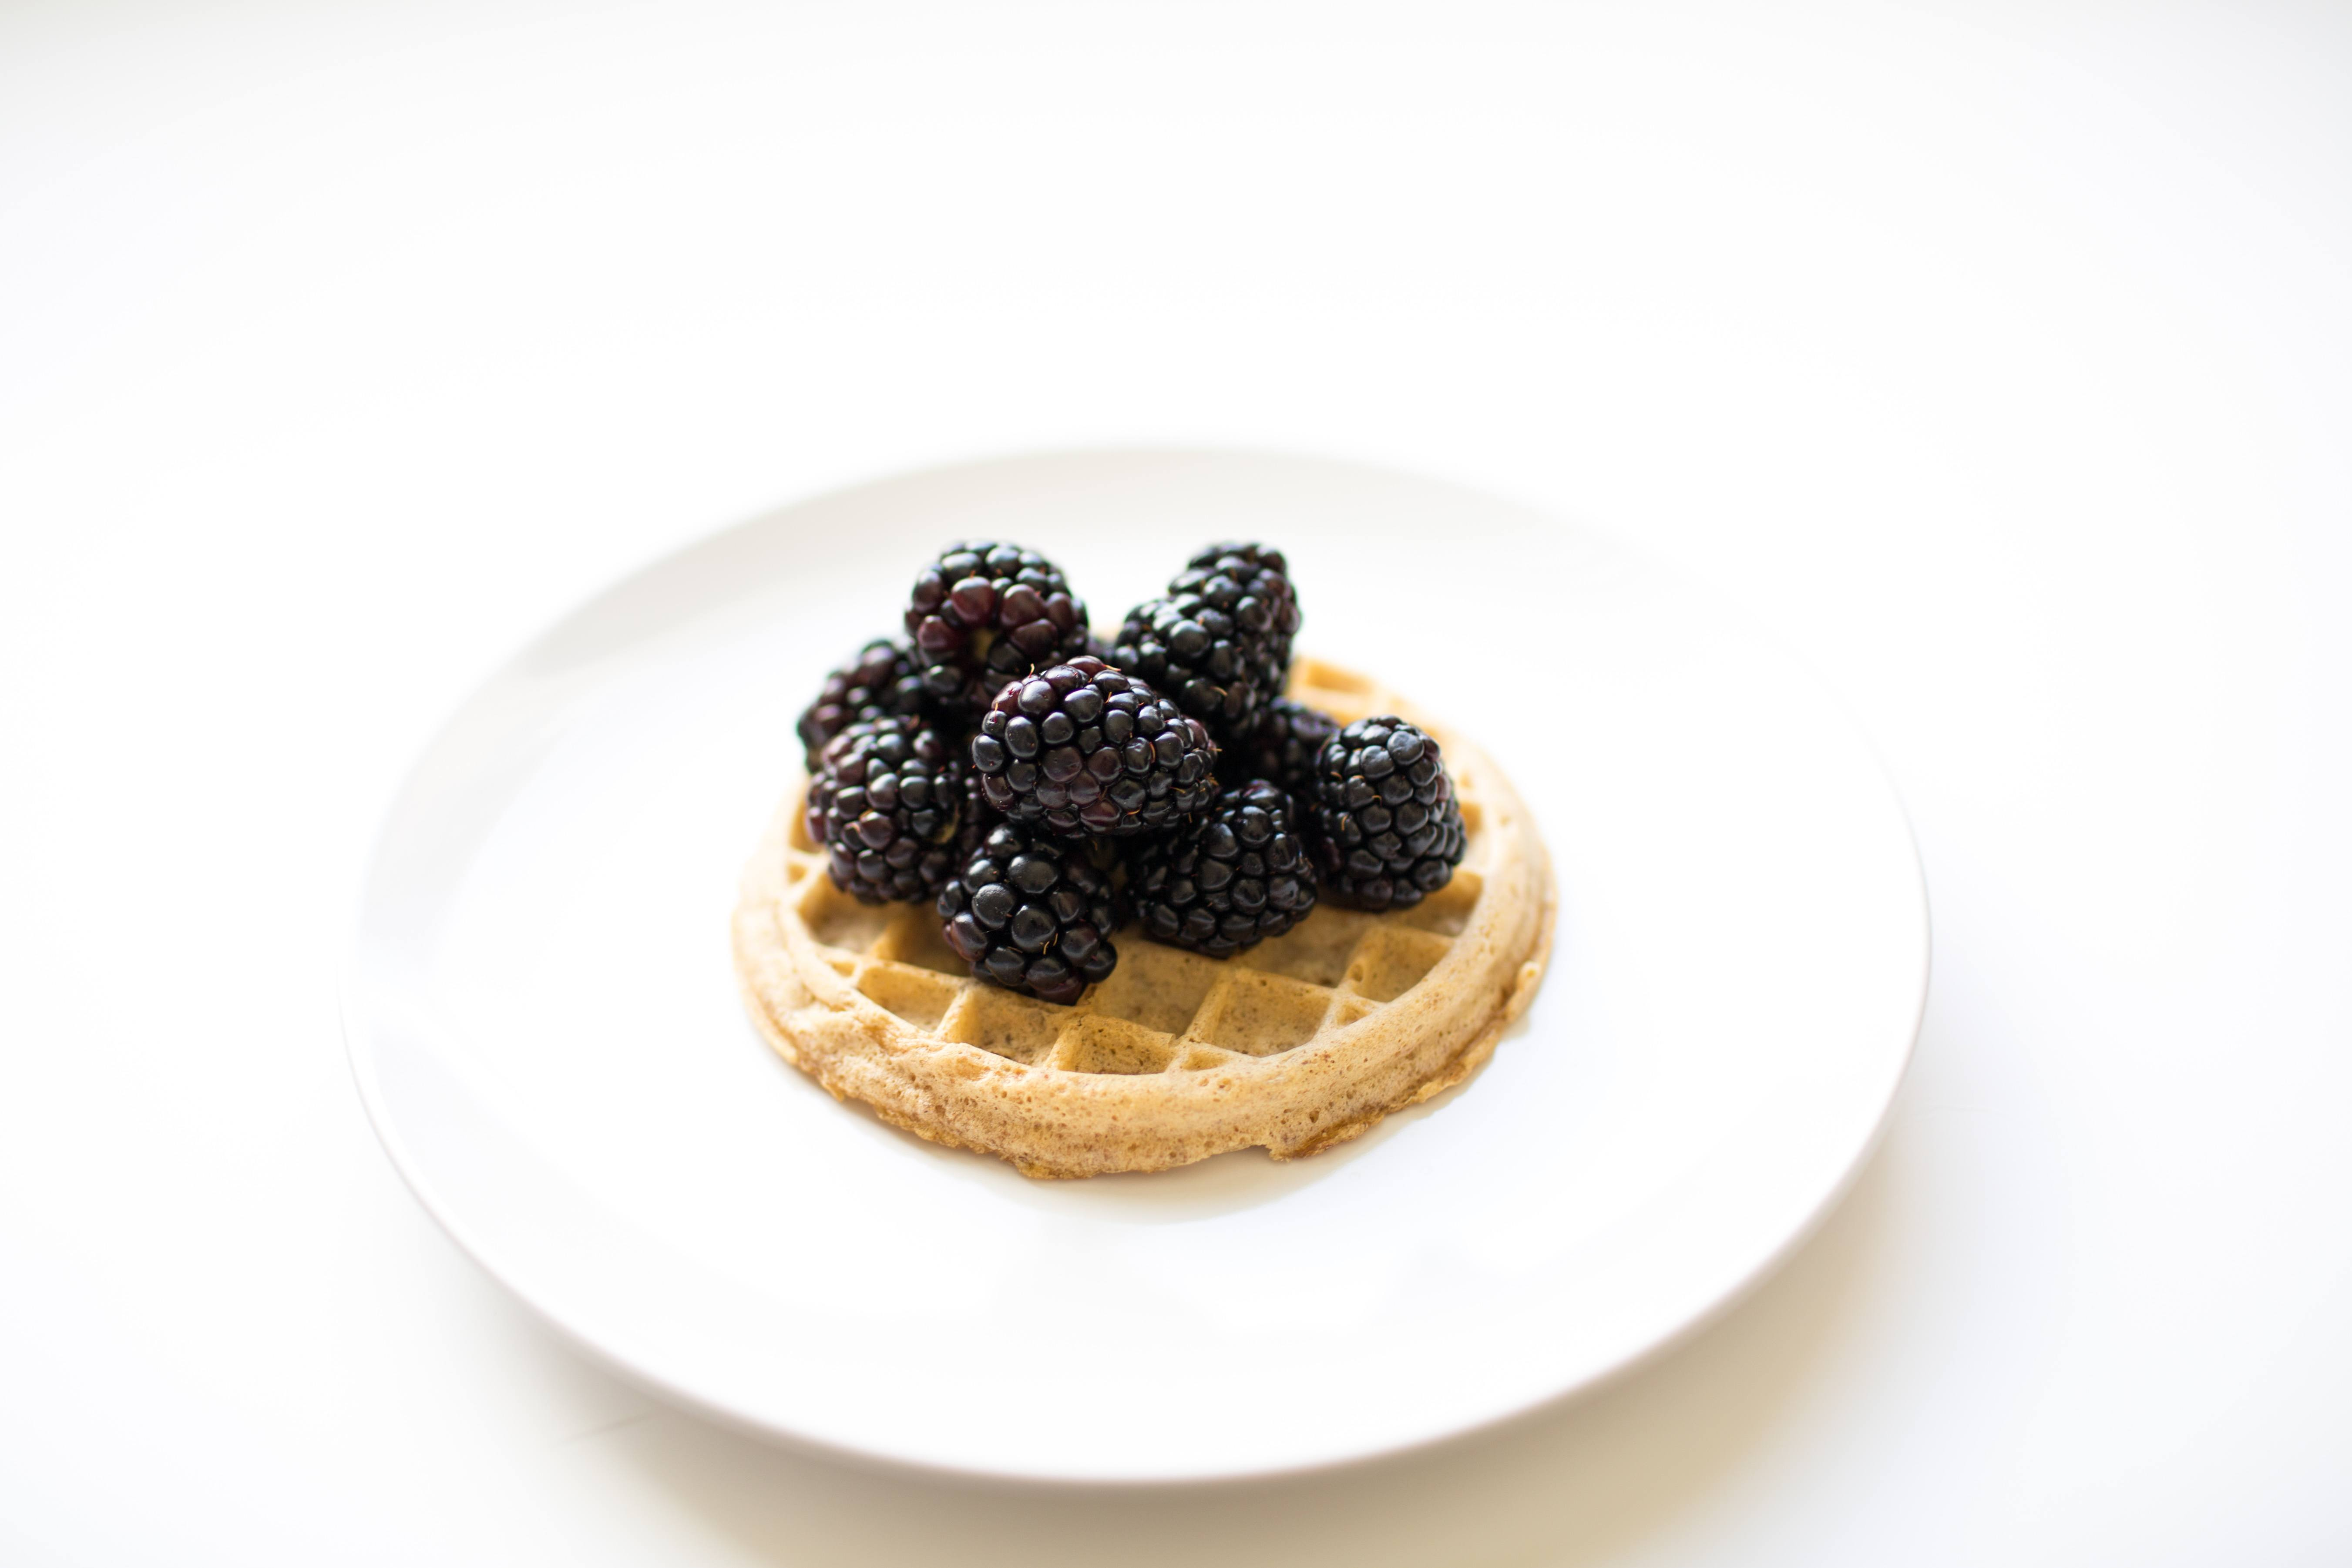 100 calorie snack Kashi waffle with blackberries